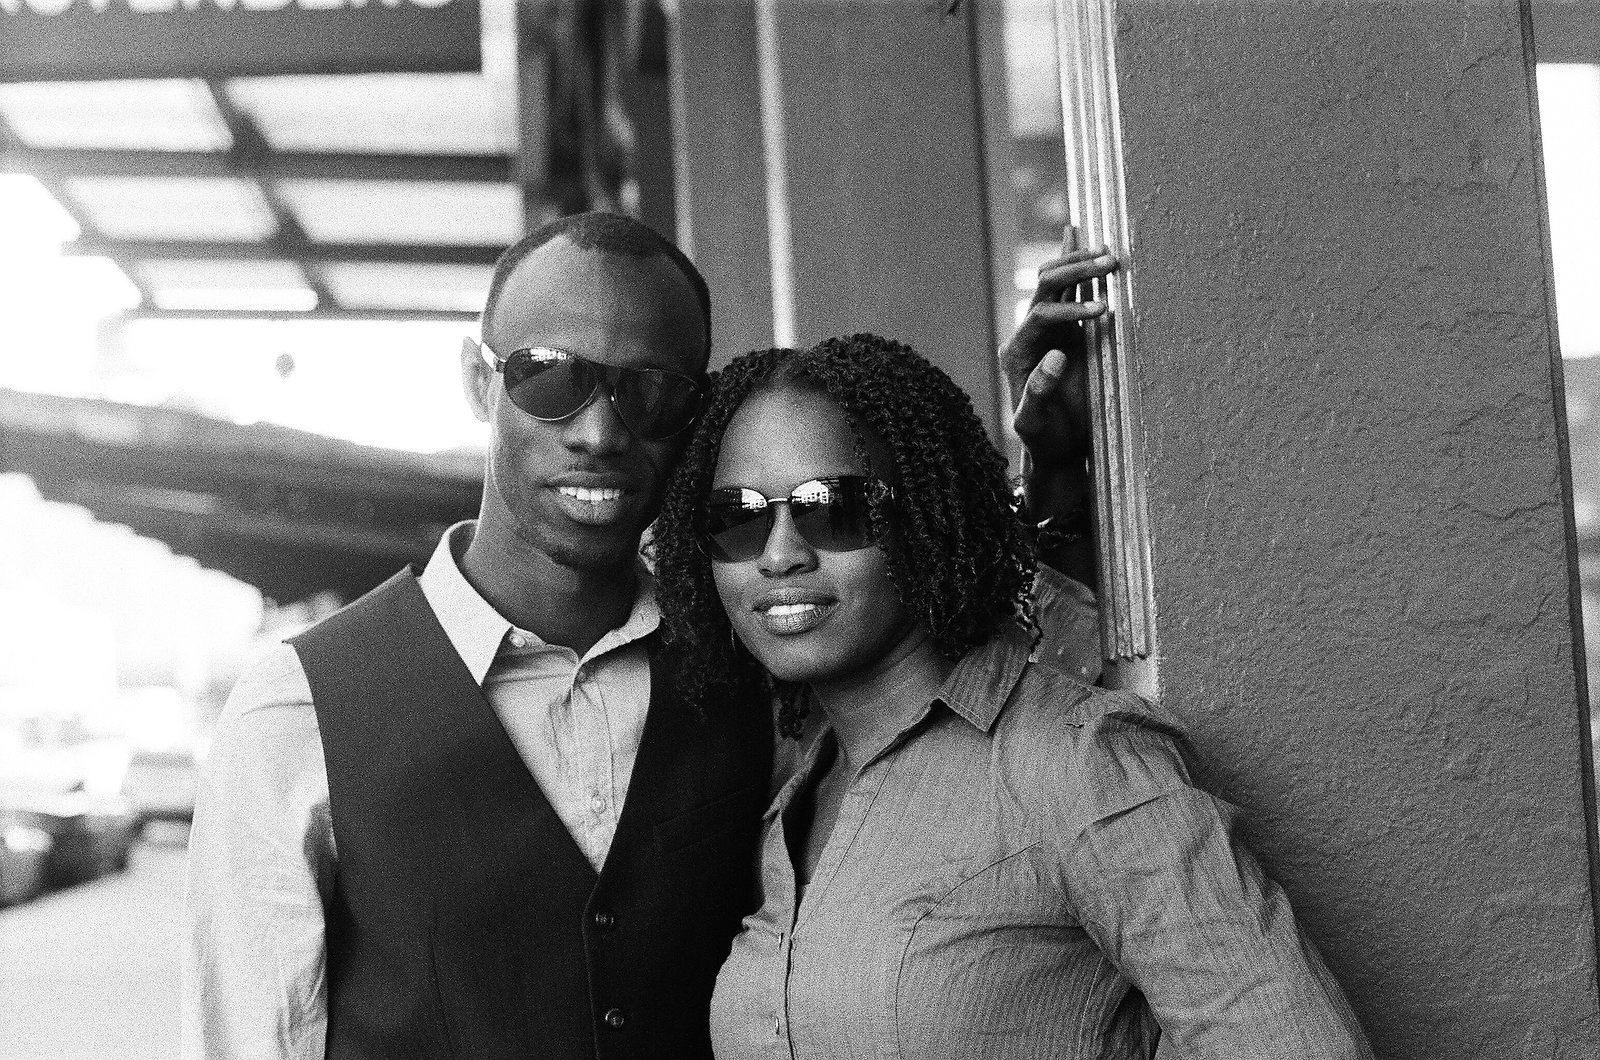 black and white photo of engaged couple in meatpacking district